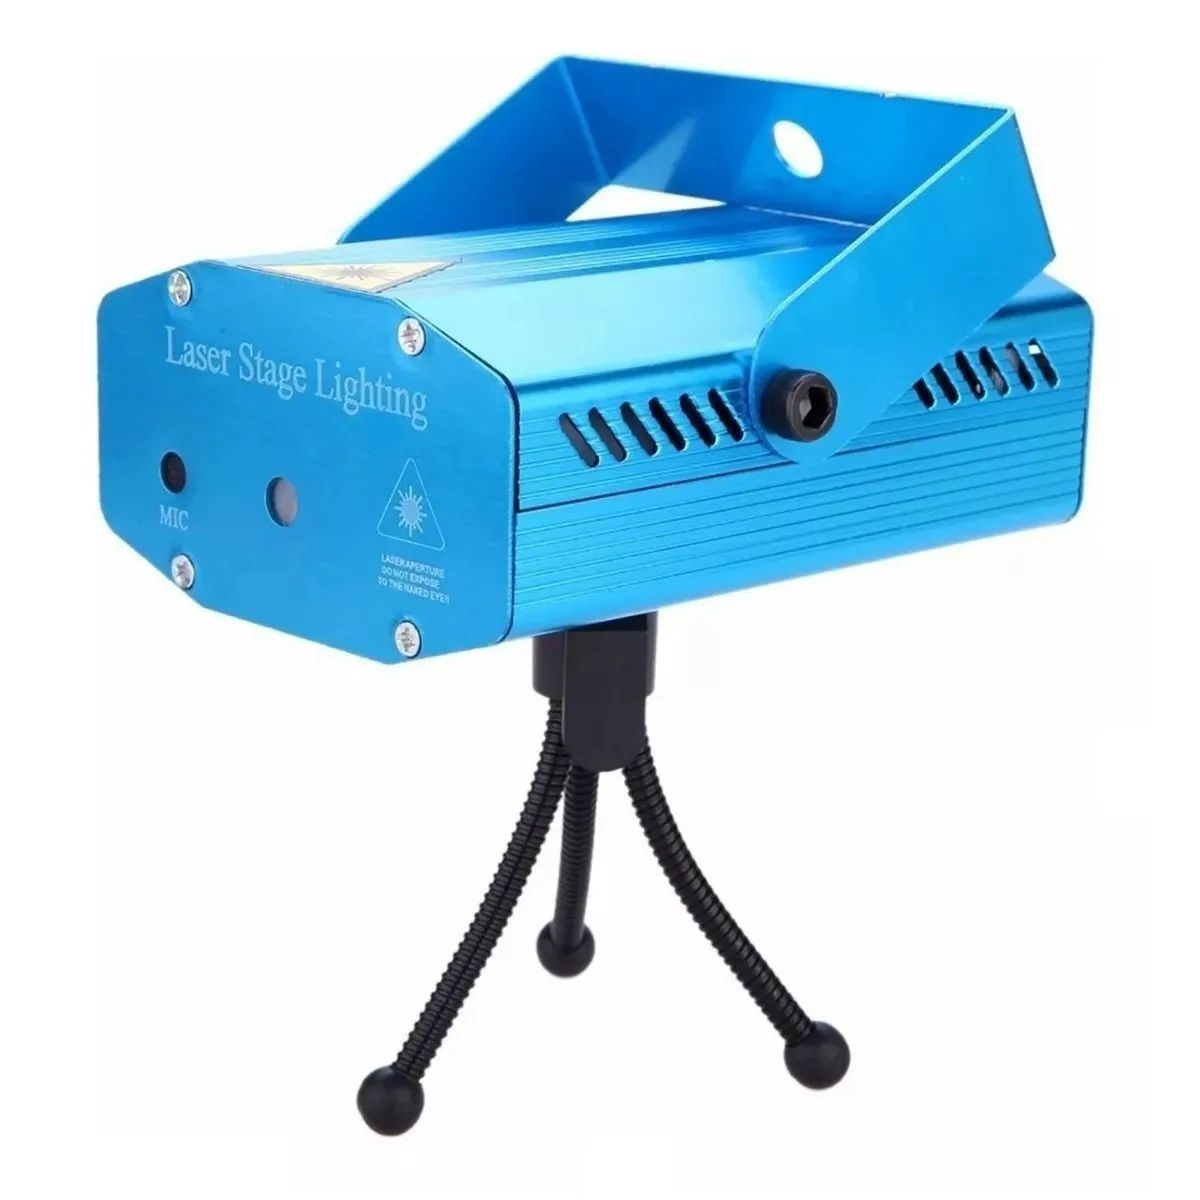 Mini Laser Projetor Holográfico Stage Lighting Preto E Azul - SD-107